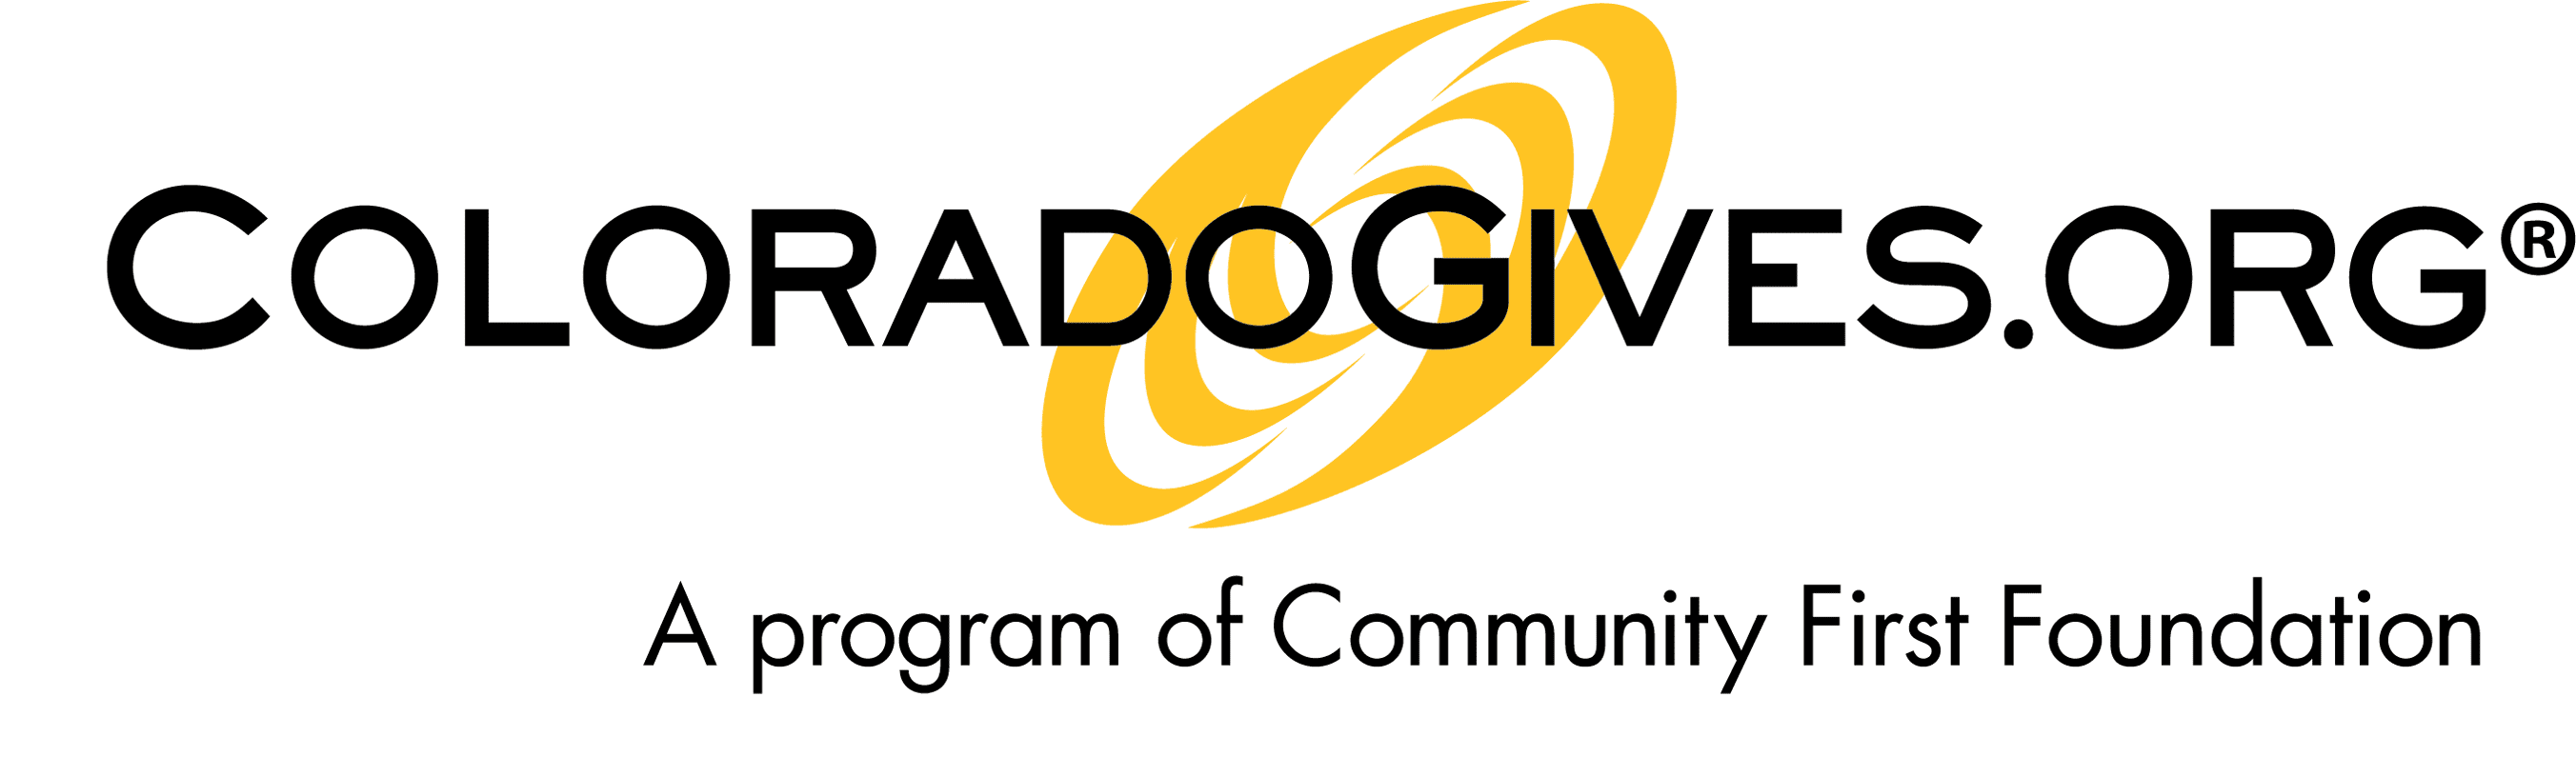 ColoradoGives logo for About page ONLY